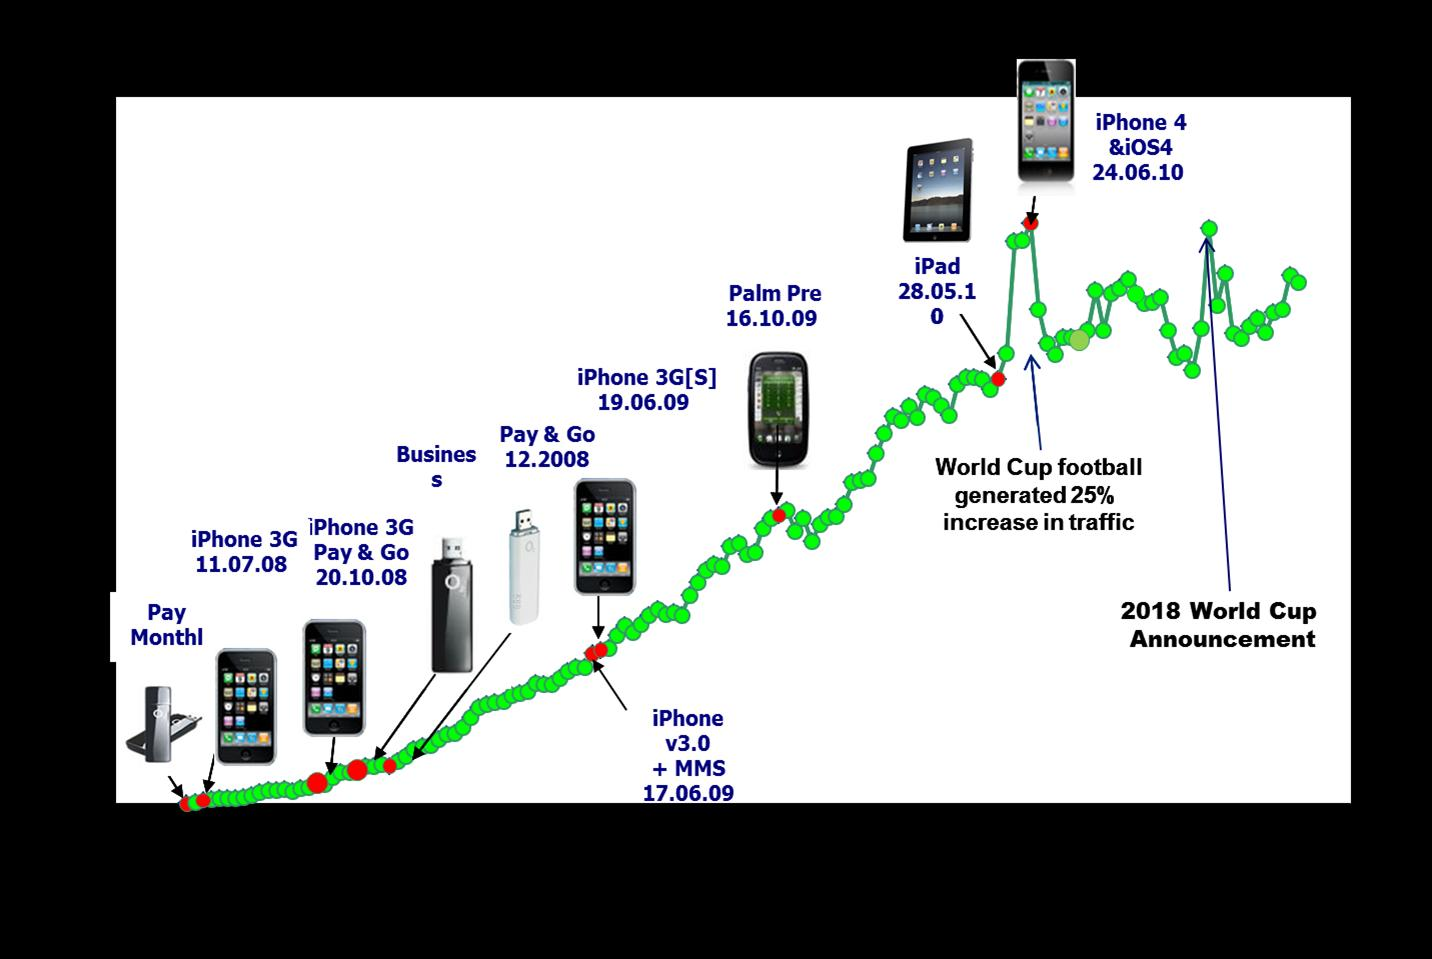 Growth In Traffic Over O2 3g Data Network Between 2008 And 2011 Diagram Correlated With Device Intro Milestones